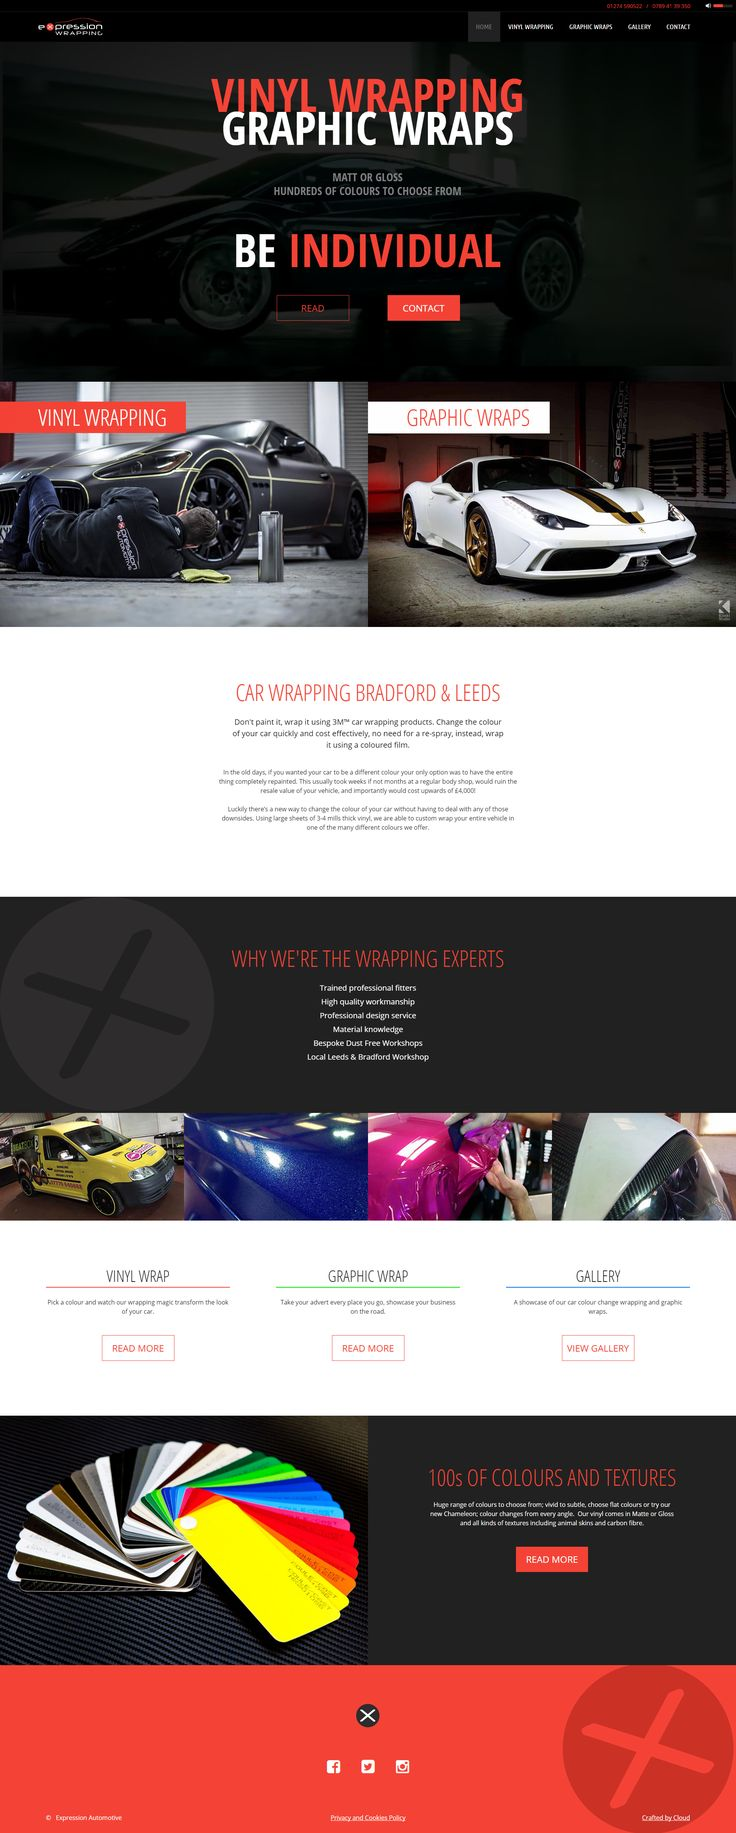 http://www.expressioncarwrapping.co.uk  Website for Expression Wrapping of Bradford, UK.  Fully responsive website incorporating a video in the hero area.  #webdesign #responsive #design #bradford #cars #wrapping #automotive